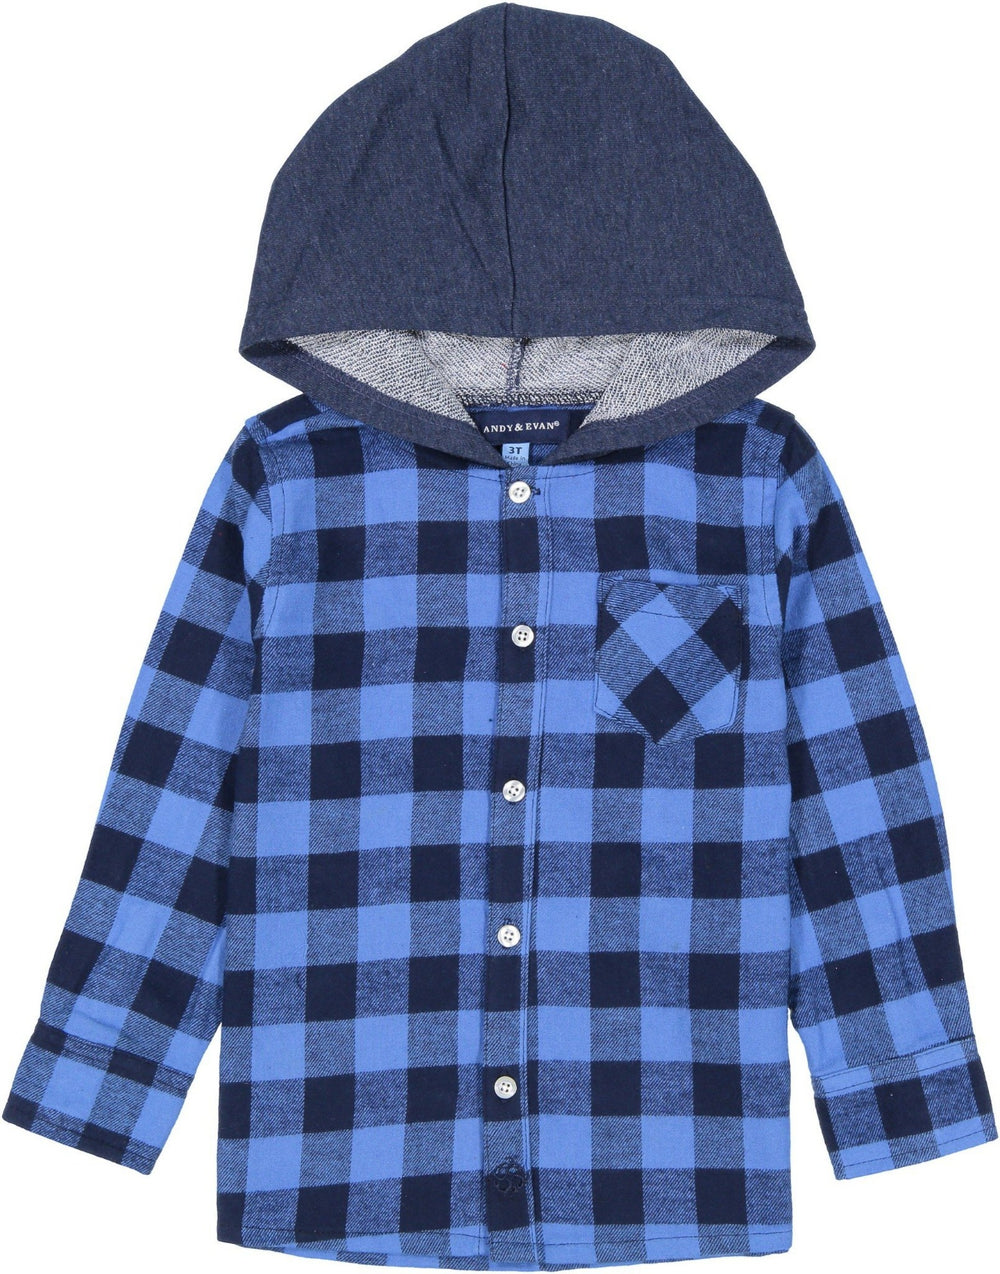 Boys Dark Blue Checked Button Down Hoodie - Andy & Evan